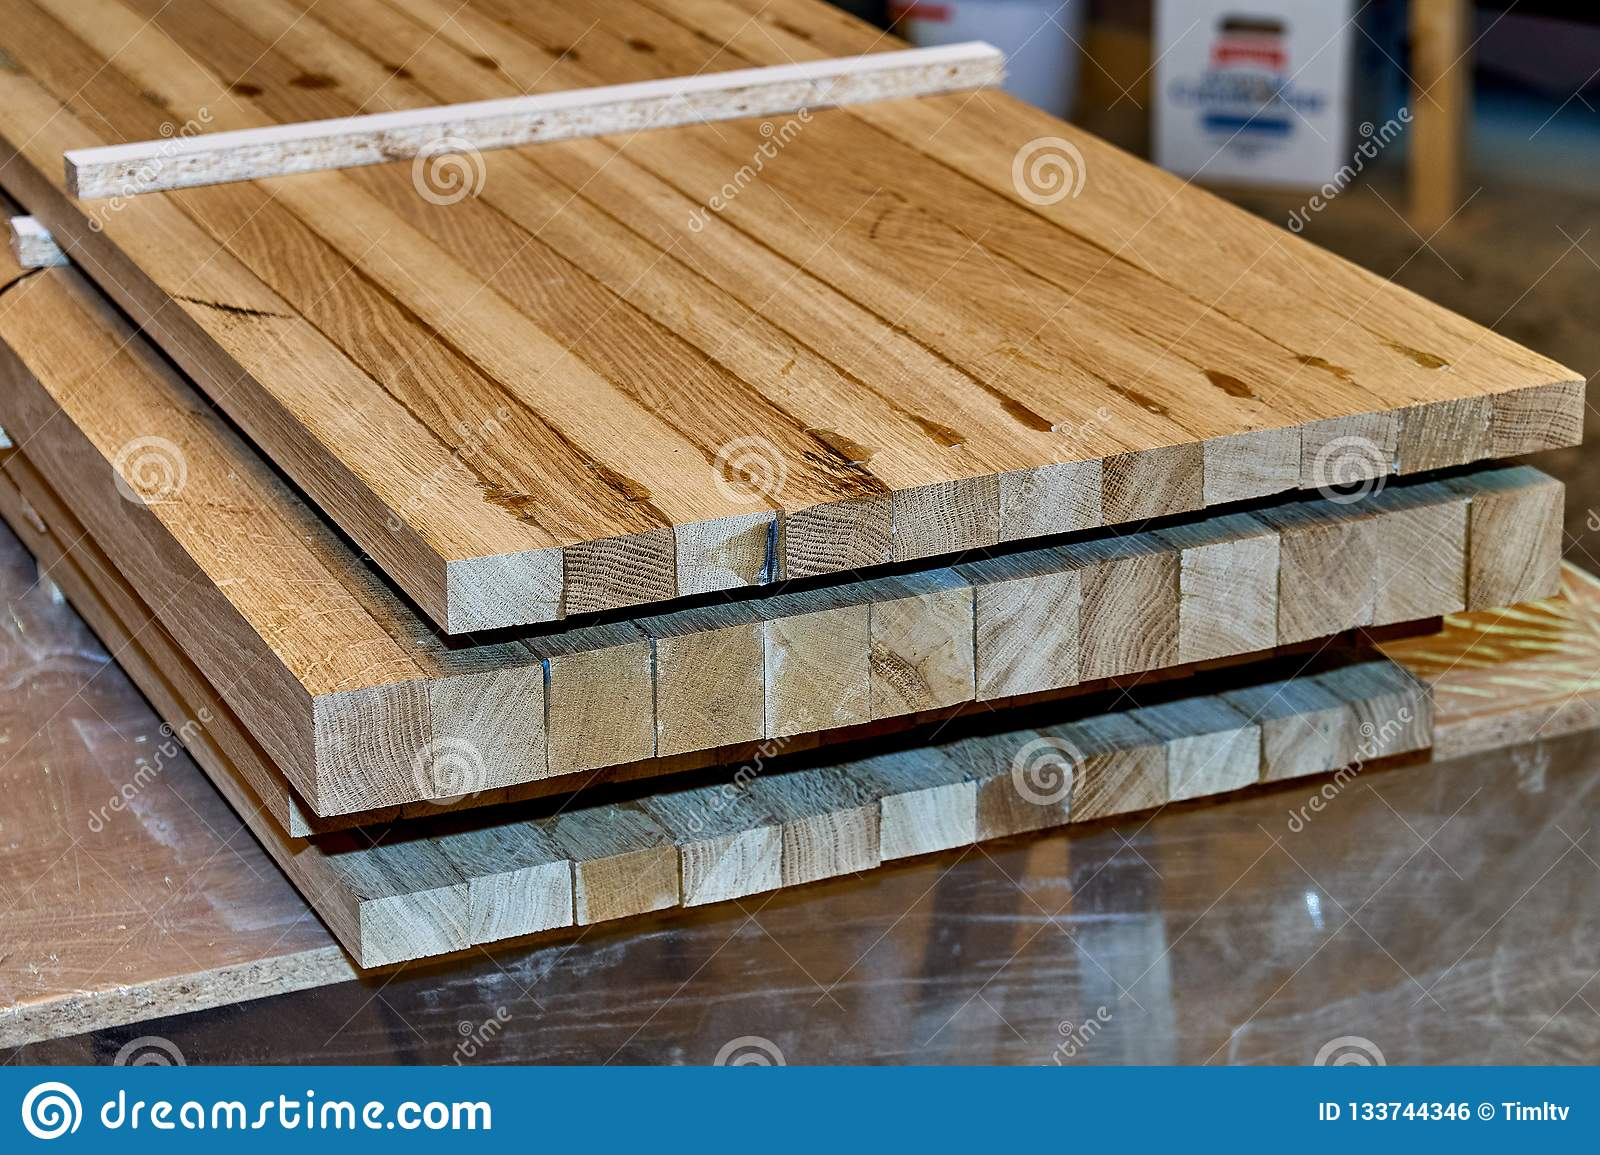 Production manufacturing glued plywood